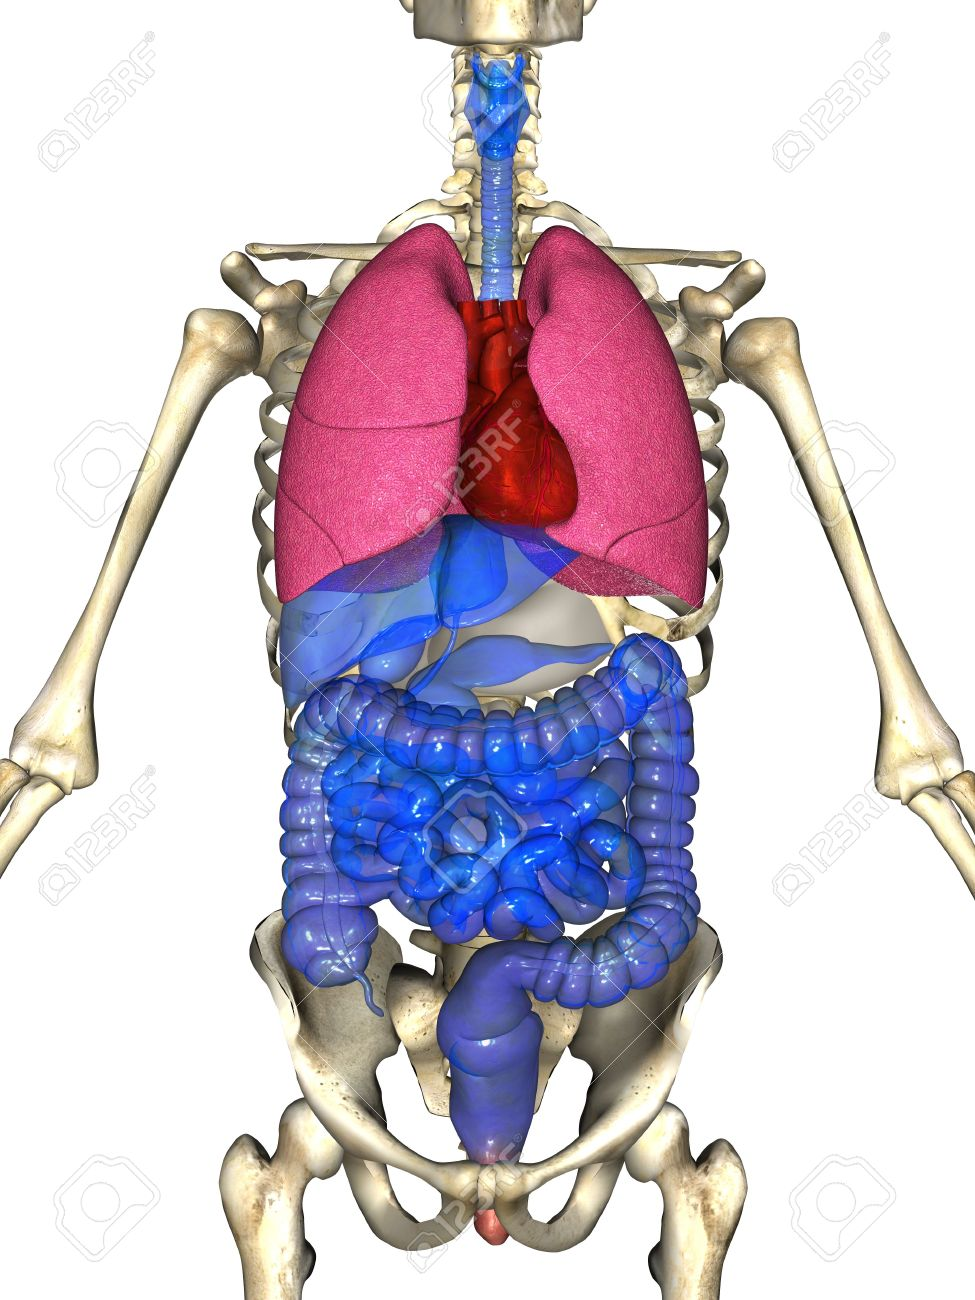 3d Rendering Of The Major Organ Systems Of The Human Body